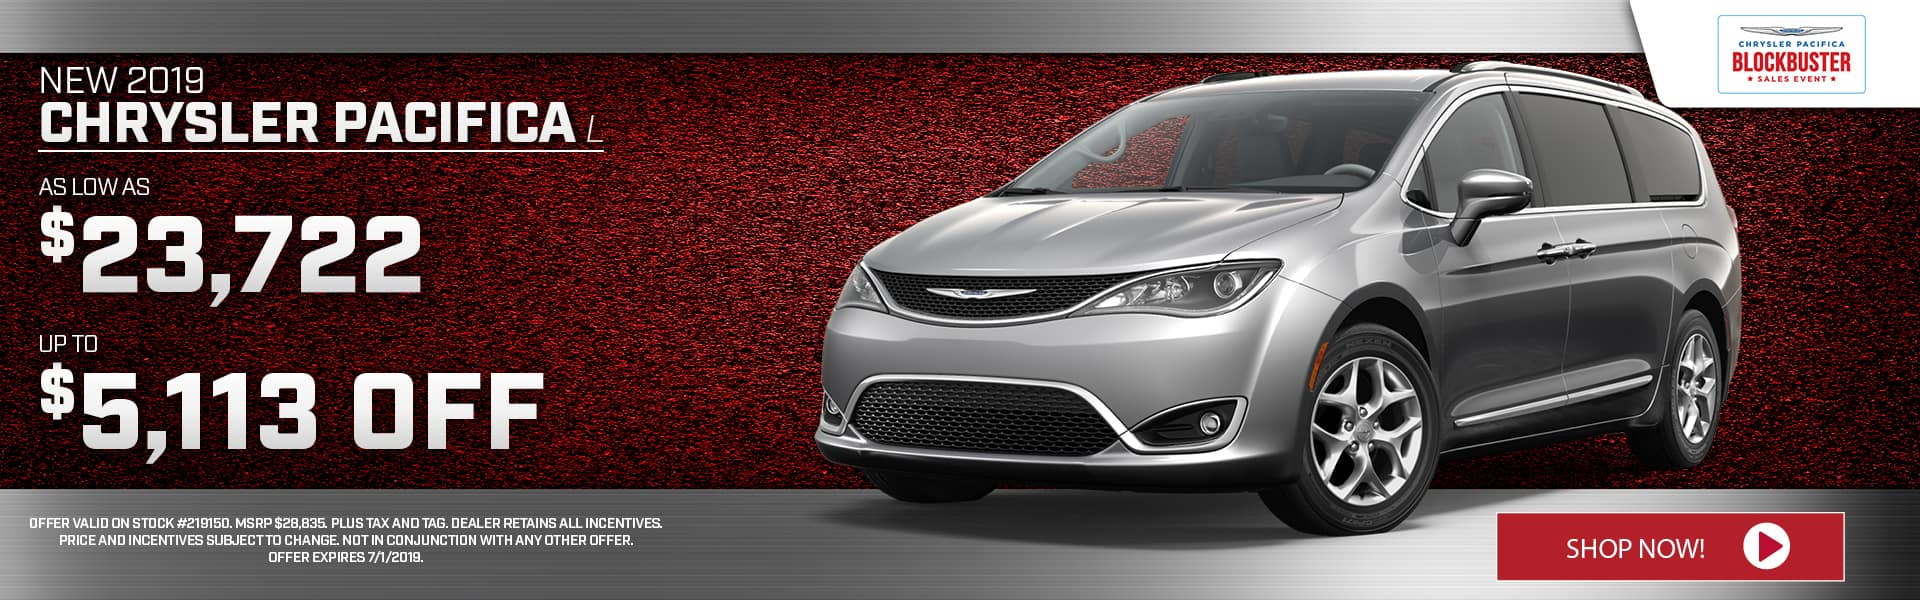 New 2019 Chrysler Pacifica Special at Thomson Chrysler in Thomson, GA